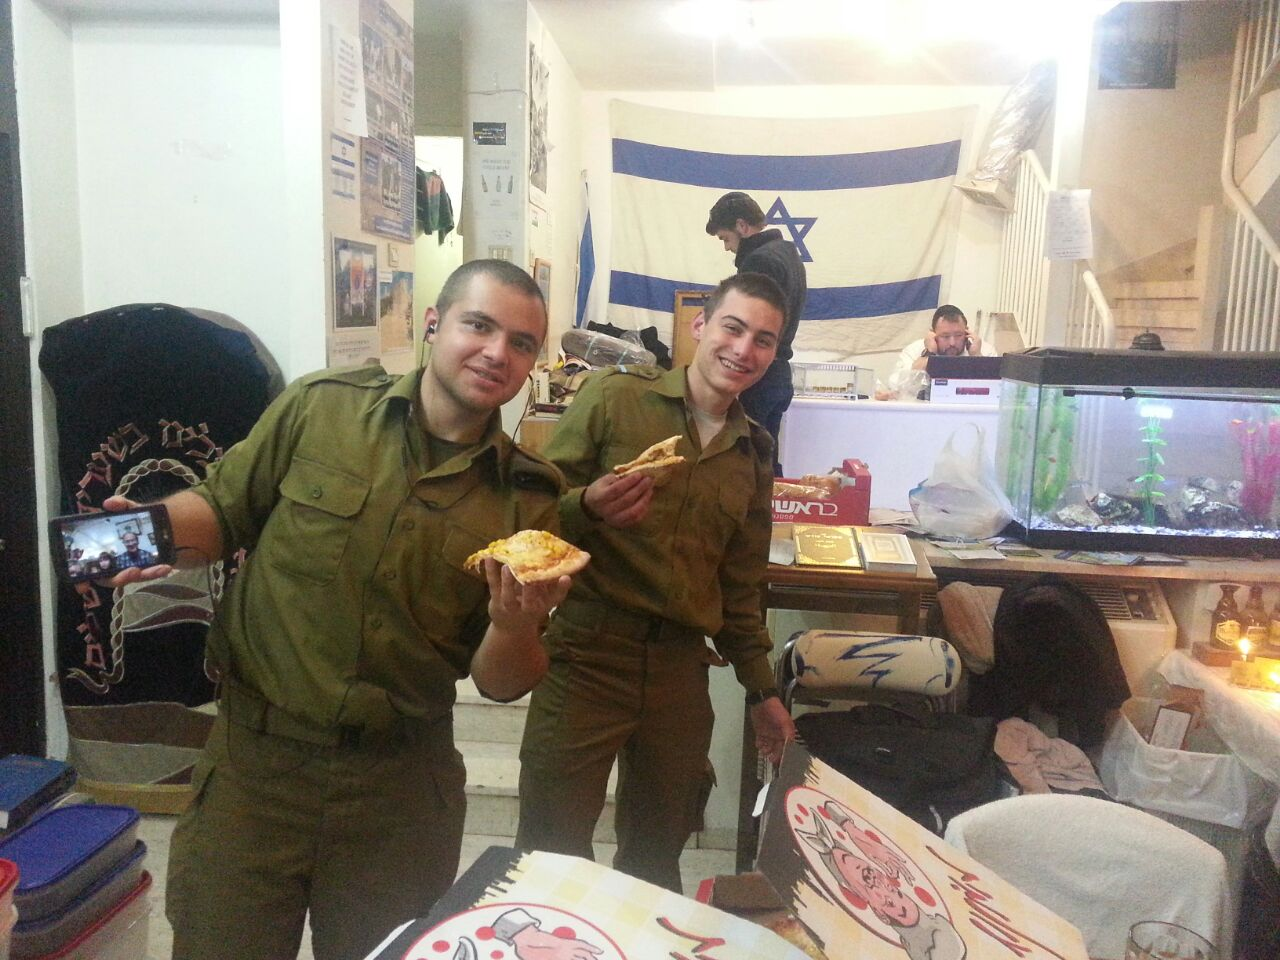 Our ``lone soldiers`` and guests celebrating Hanukkah